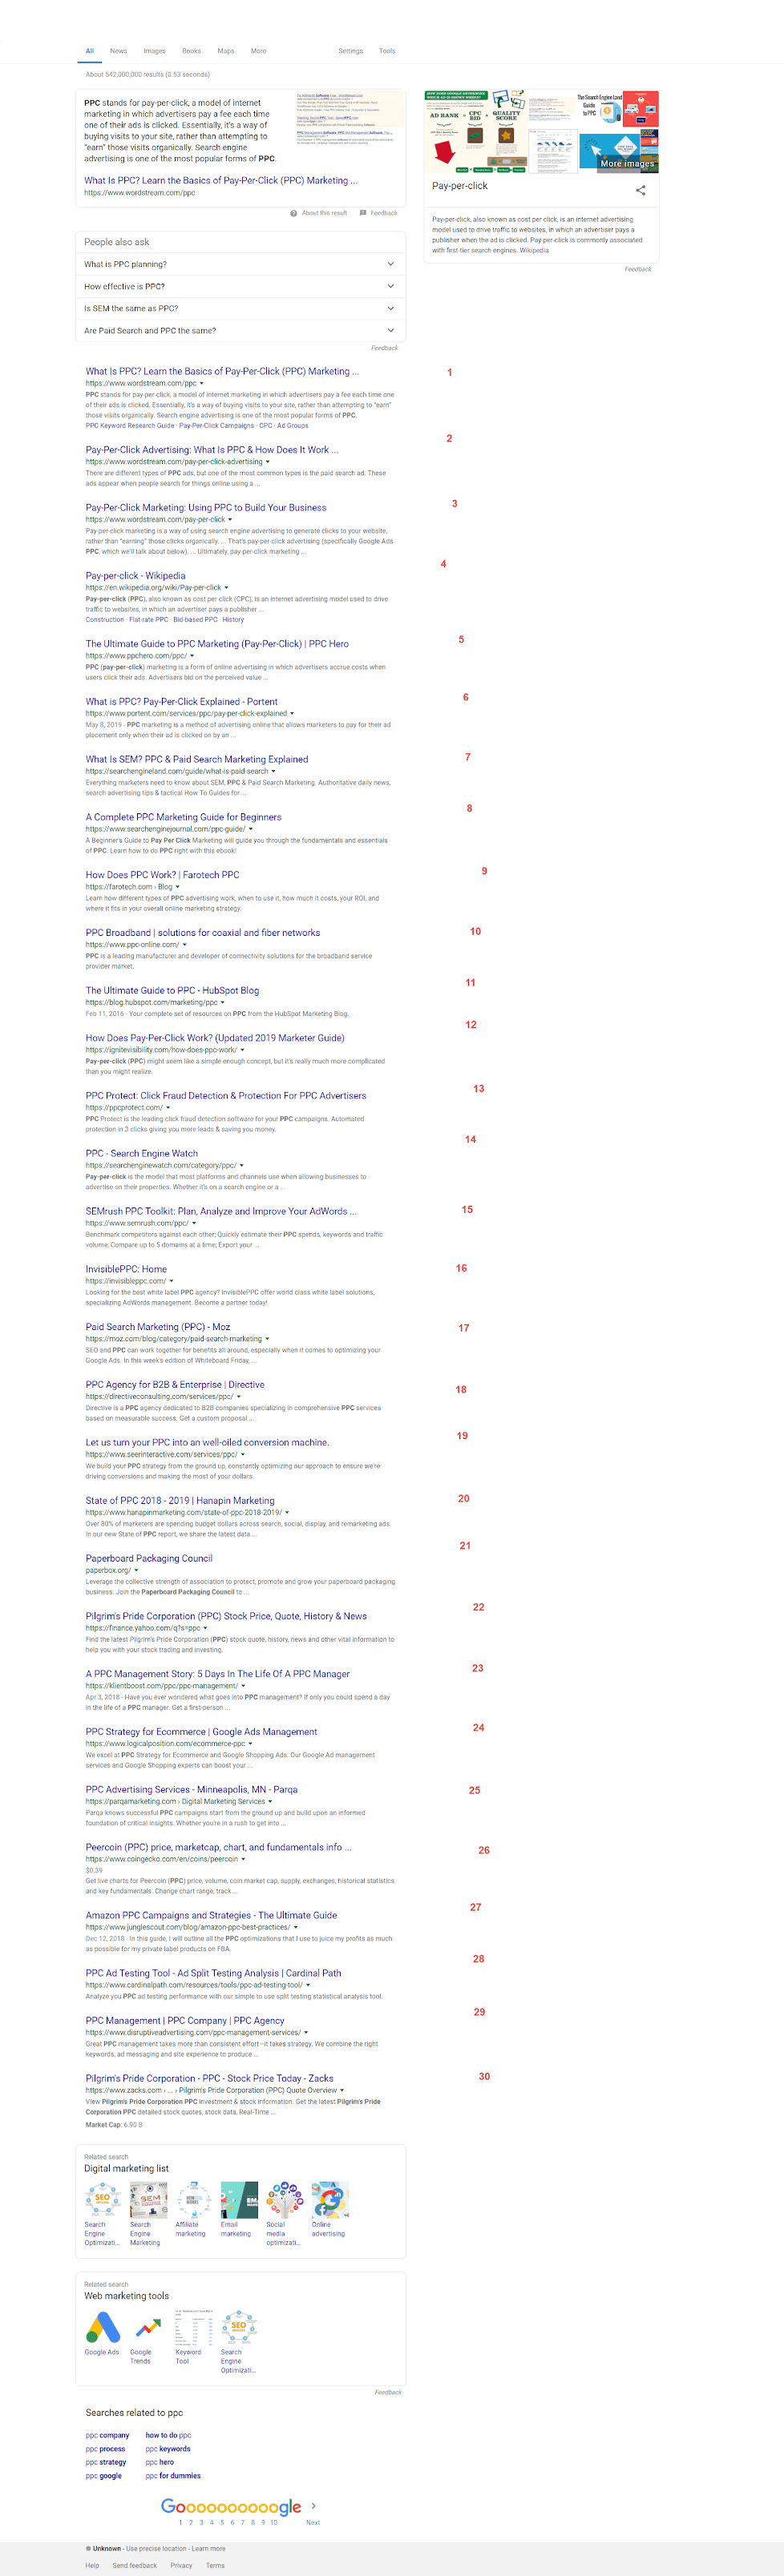 Google Displays an Unusual Search Page With 30 Results